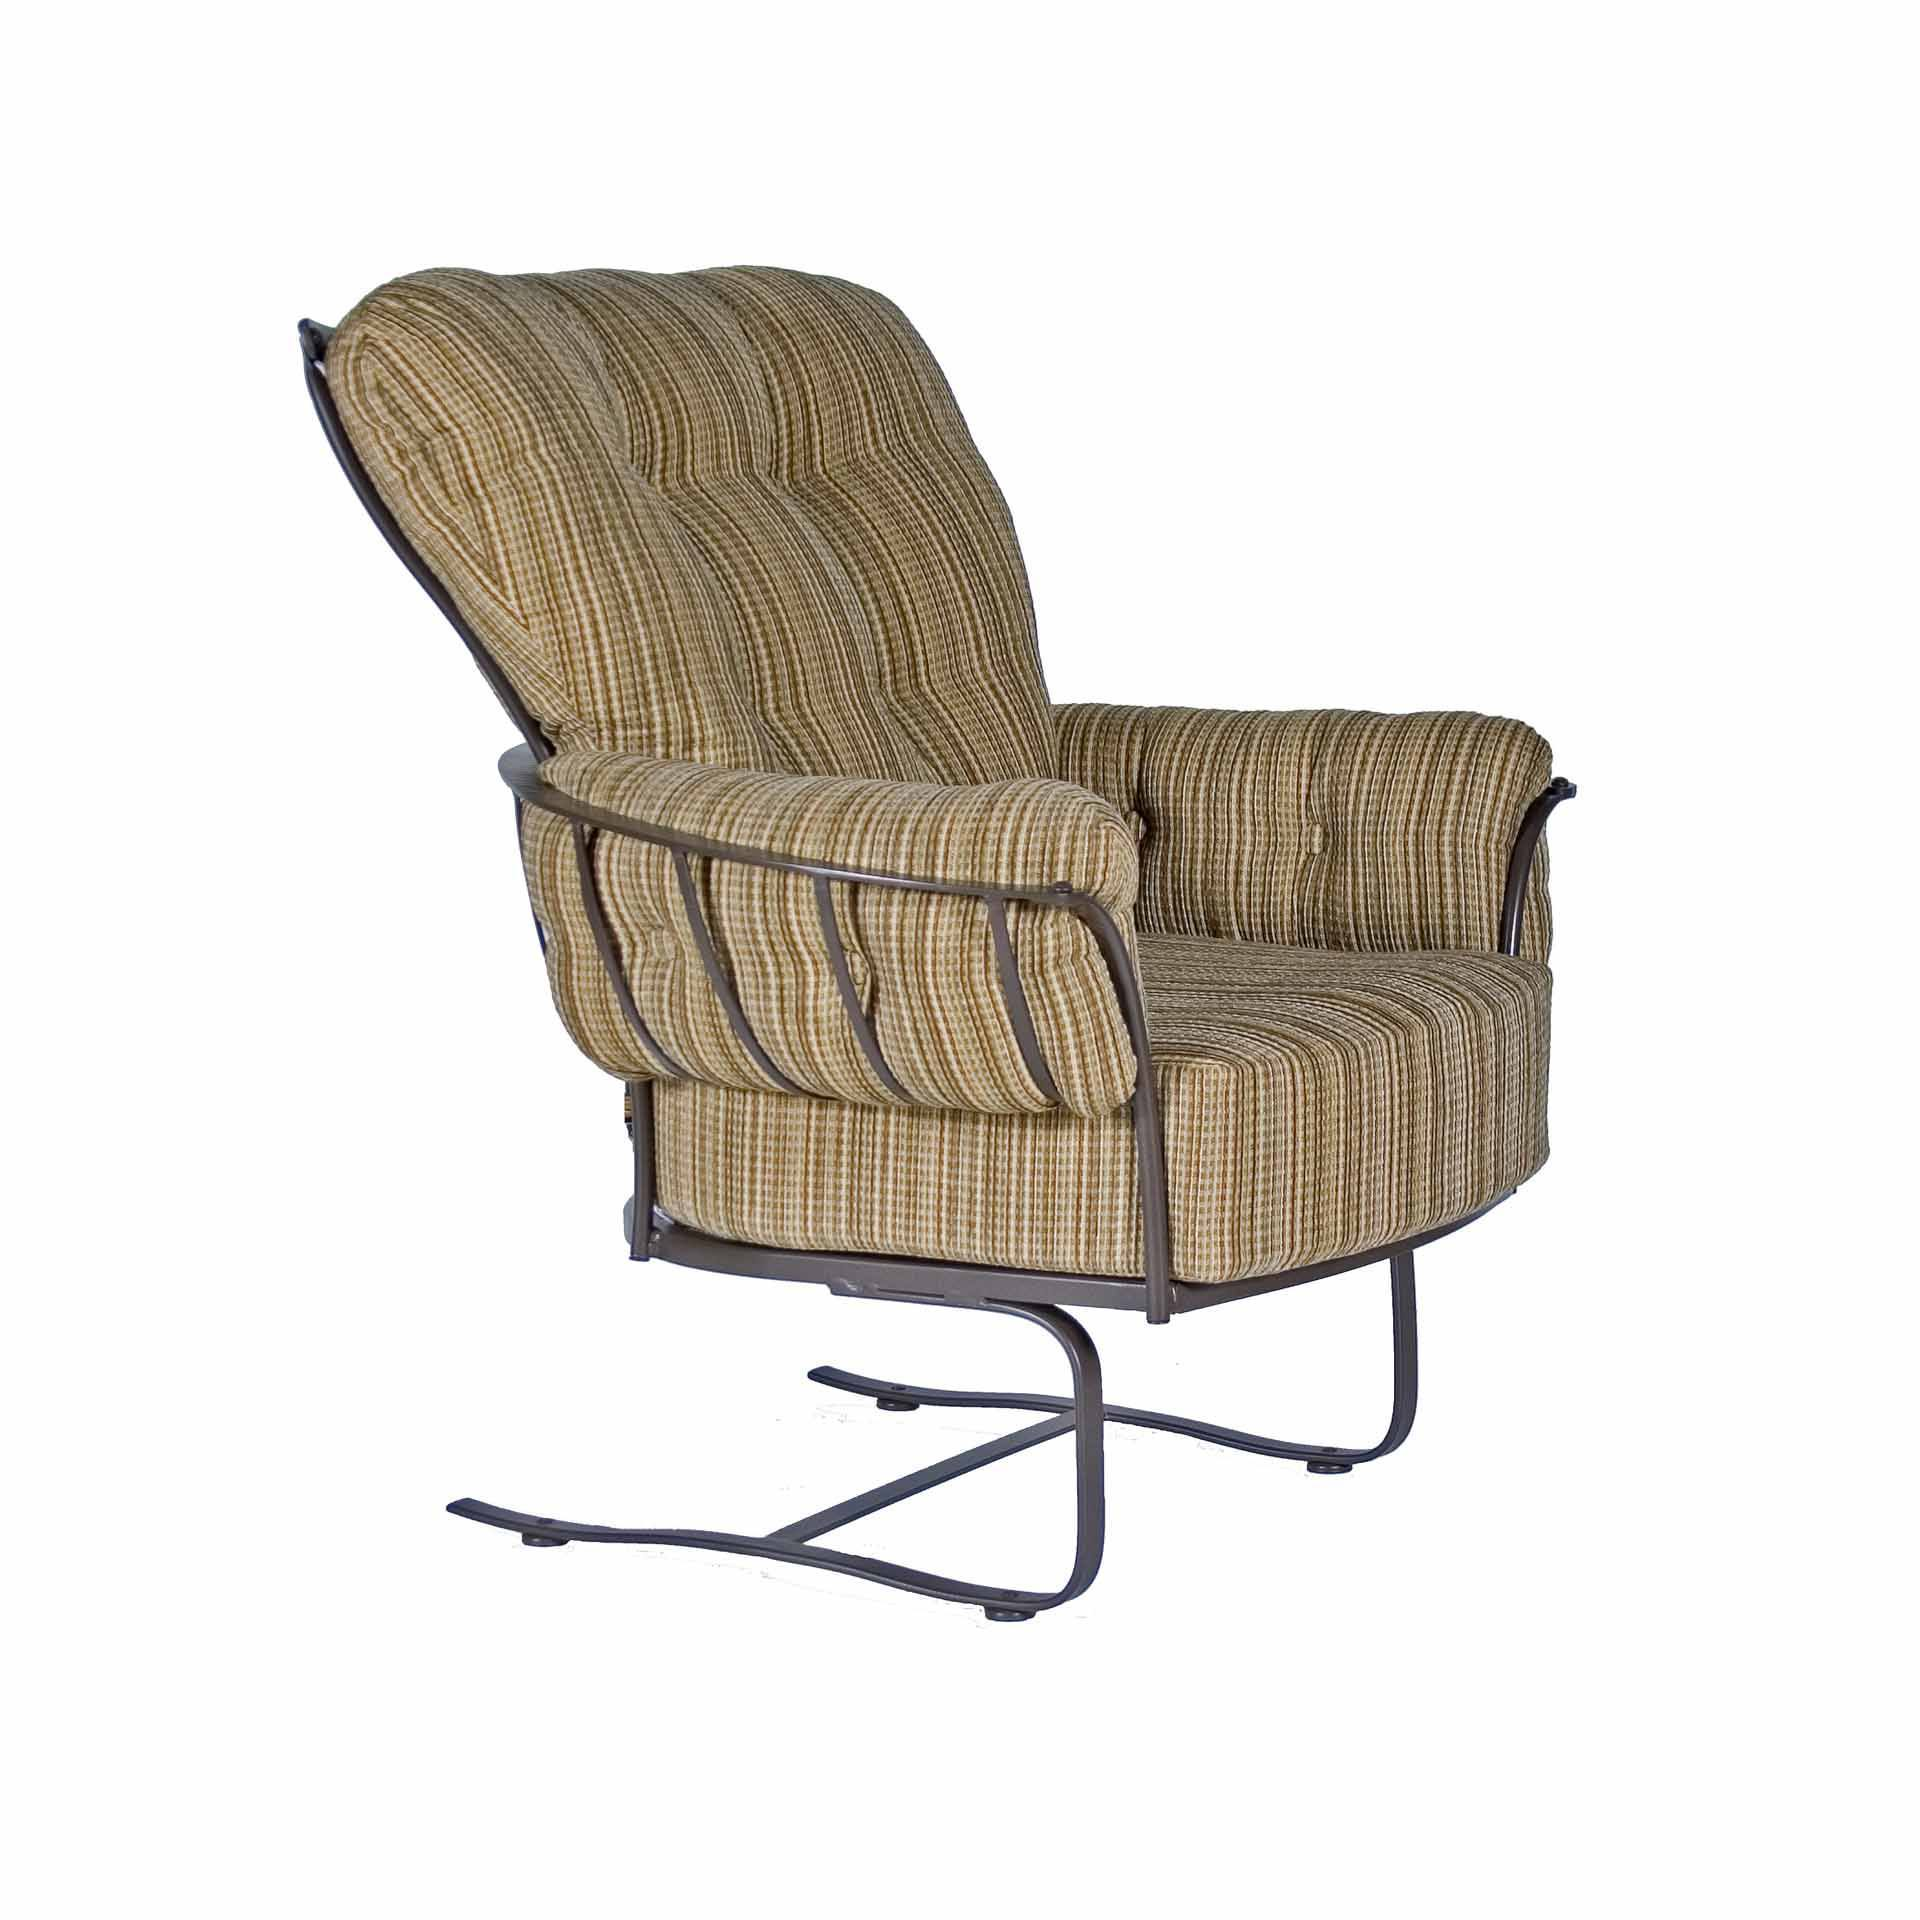 Ow Lee Monterra Spring Base Lounge Chair Leisure Living